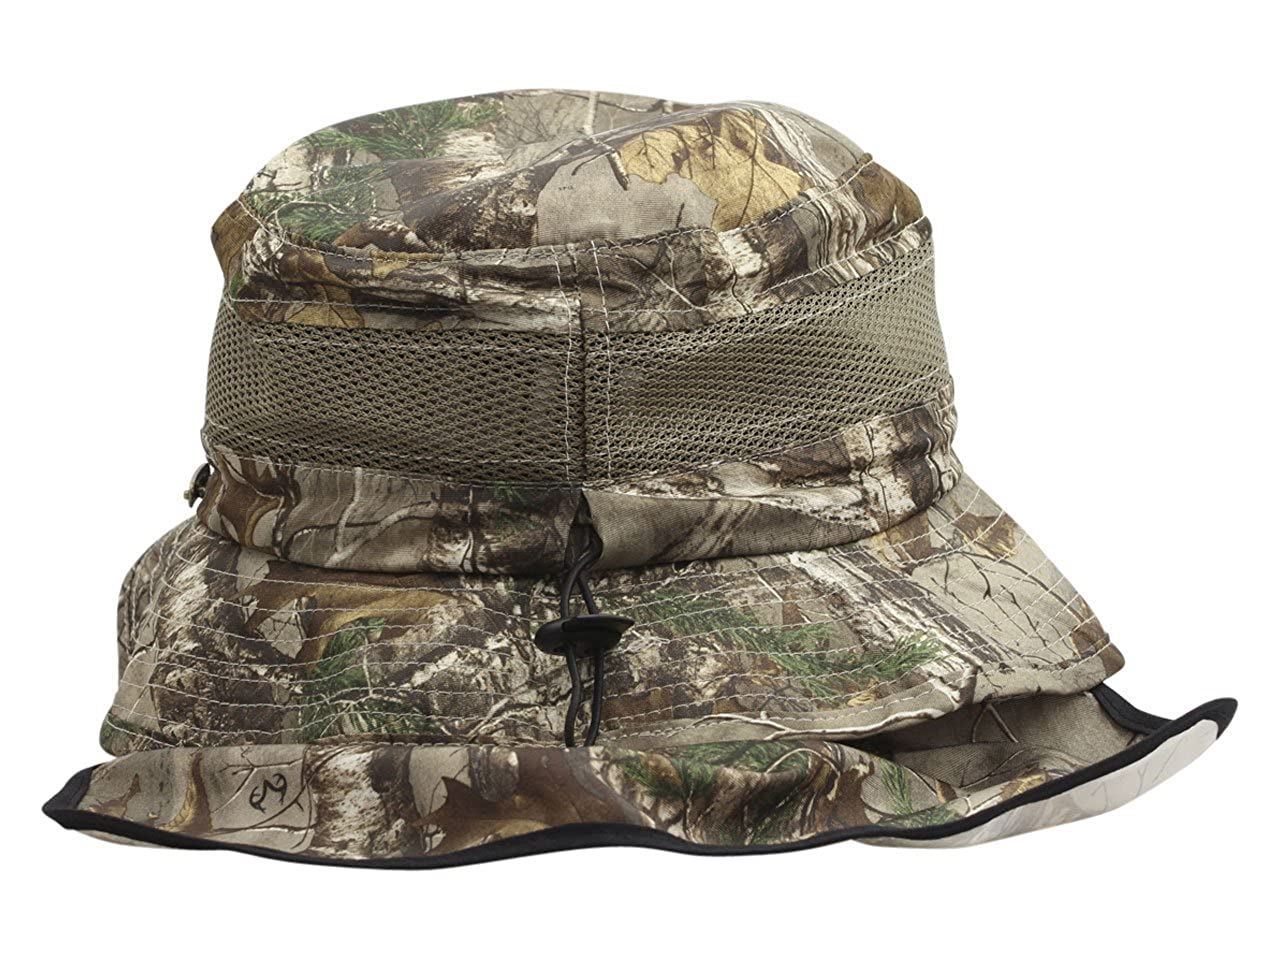 c89df0d0777 Stetson Men s Realtree Xtra No Fly Zone Insect Repellent Camo Boonie Hat  Sz  XL at Amazon Men s Clothing store